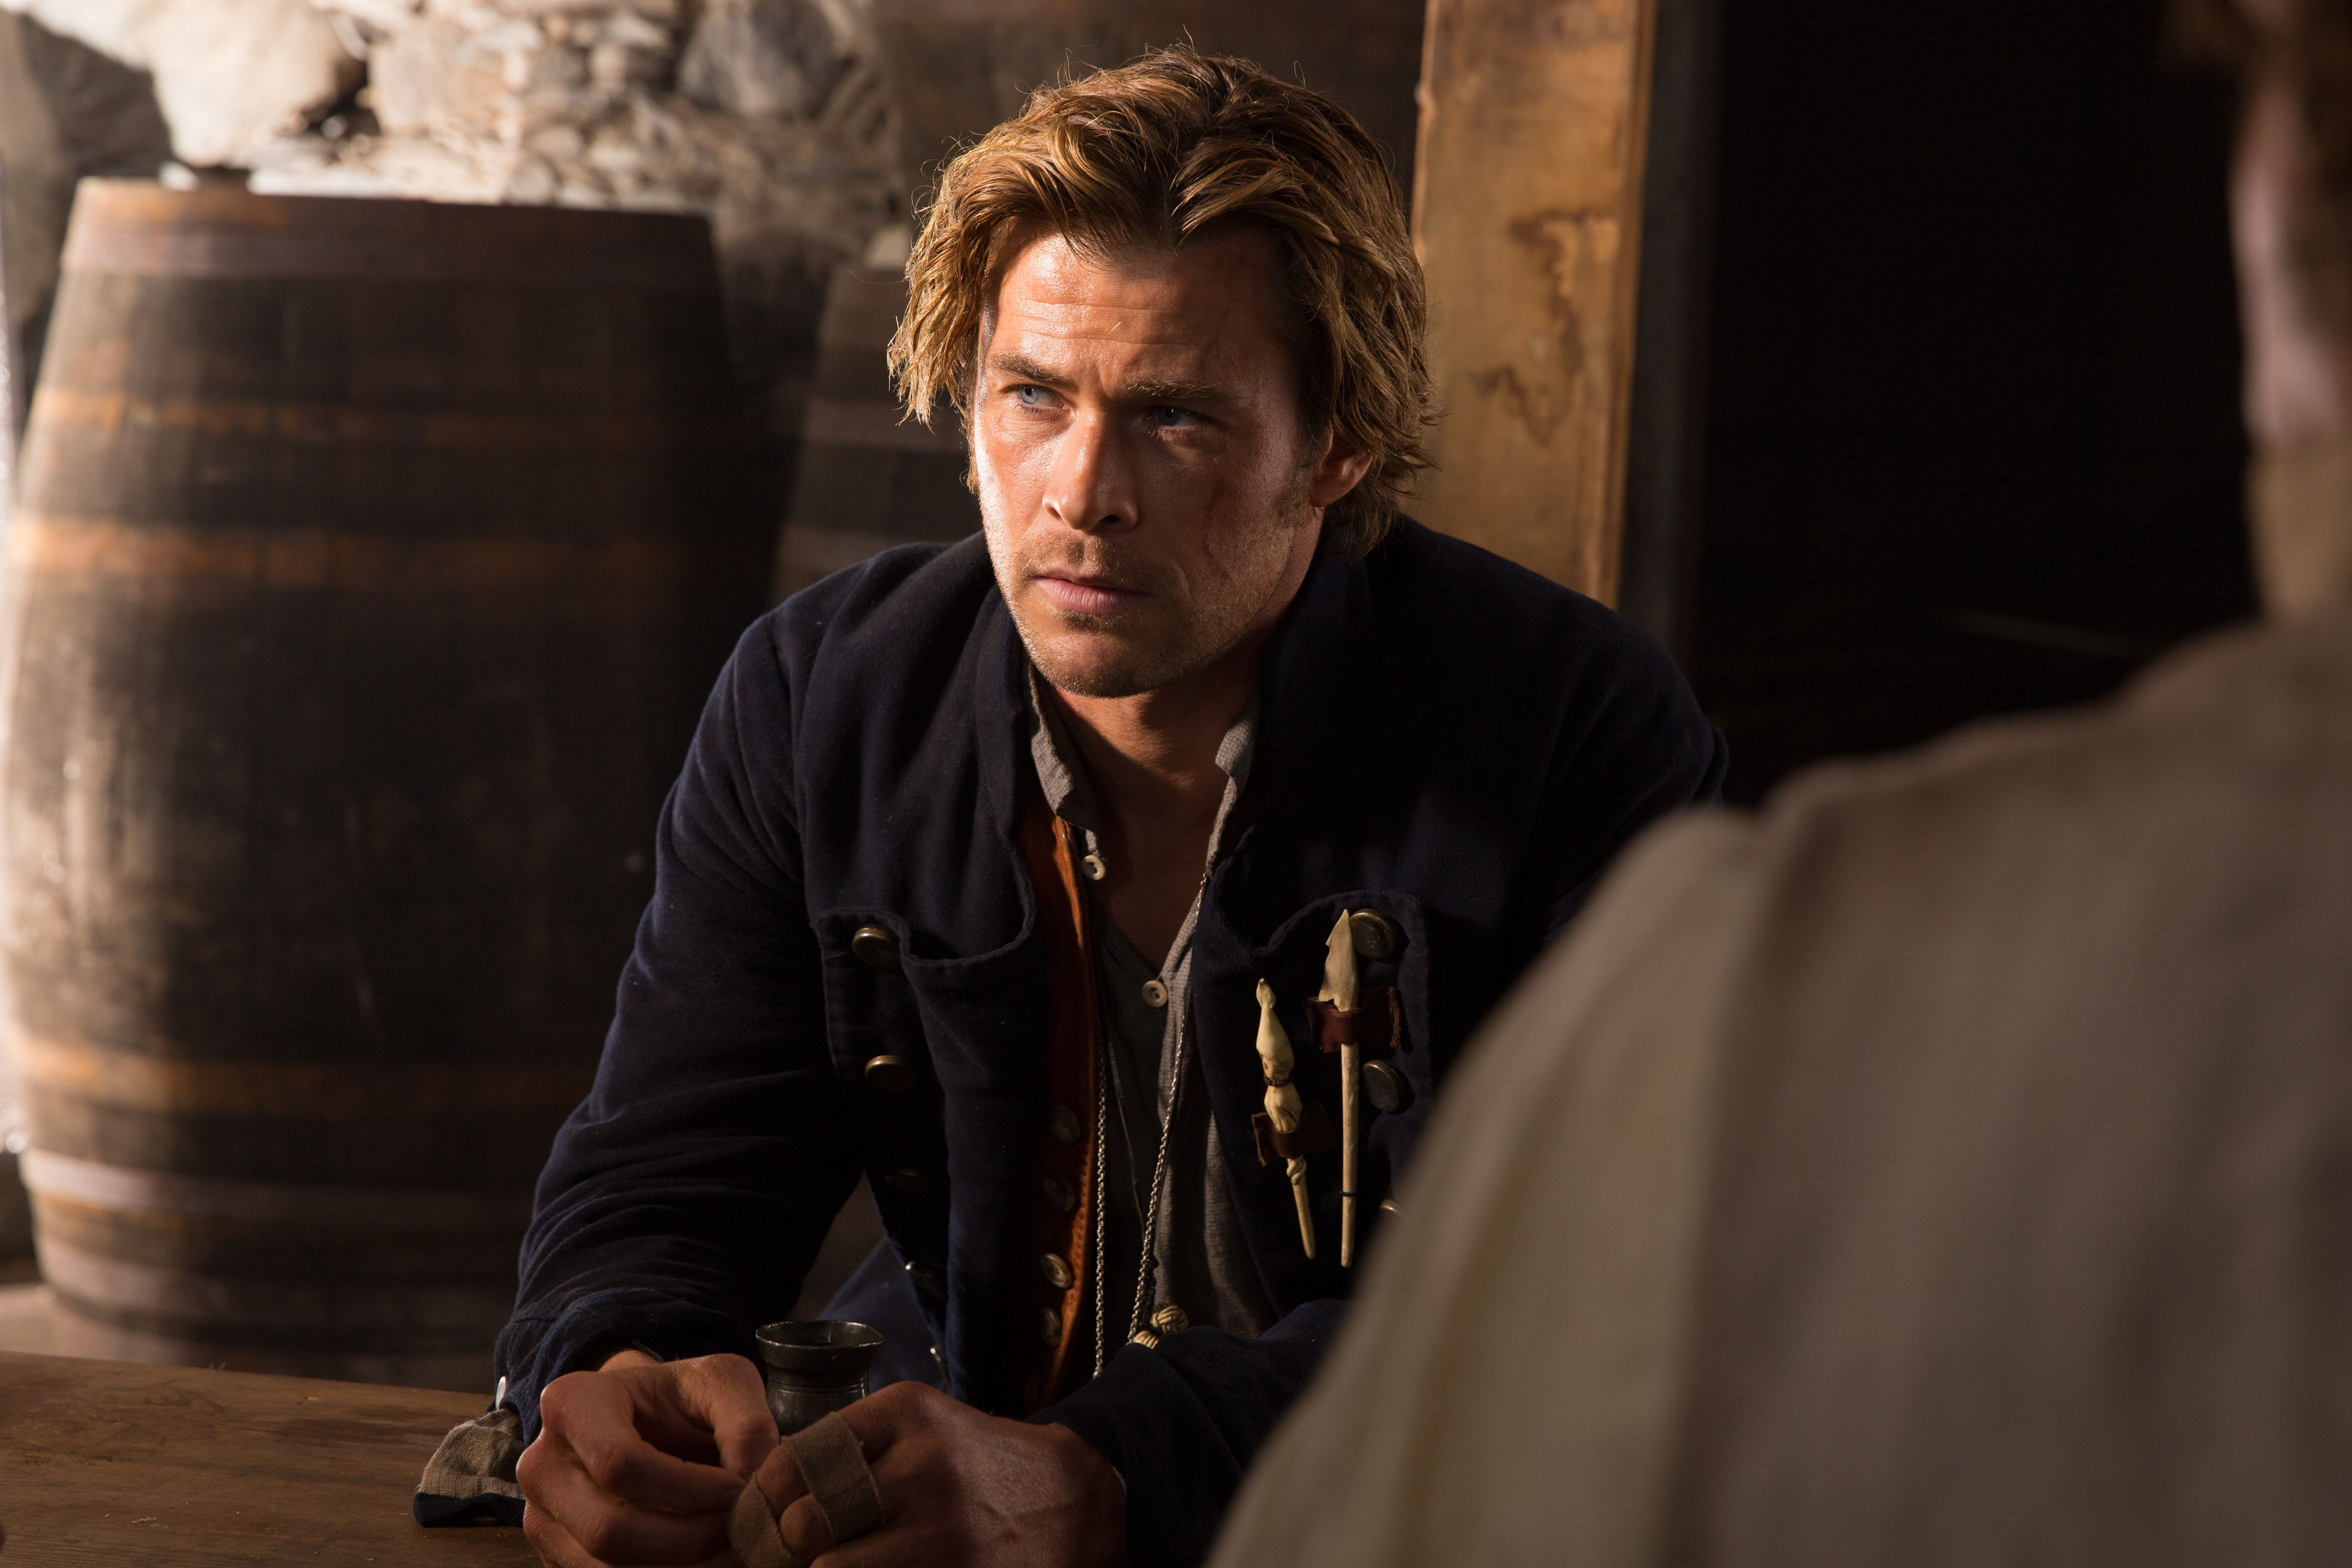 Chris Hemsworth on In the Heart of the Sea, Losing Weight ...